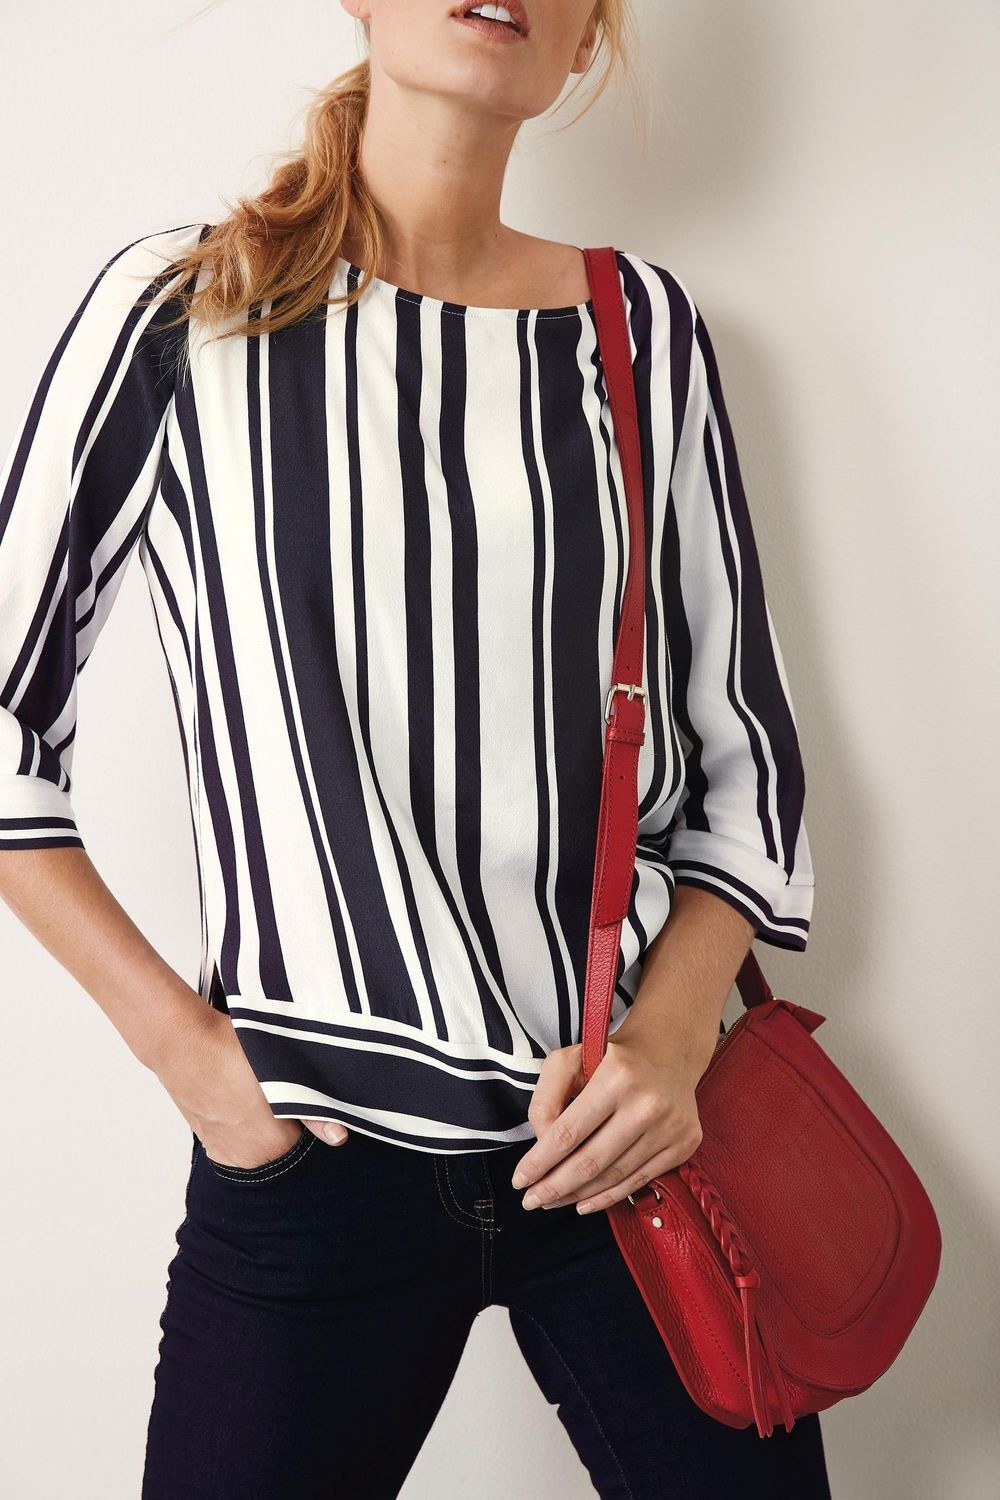 Next Stripe Boxy Tee